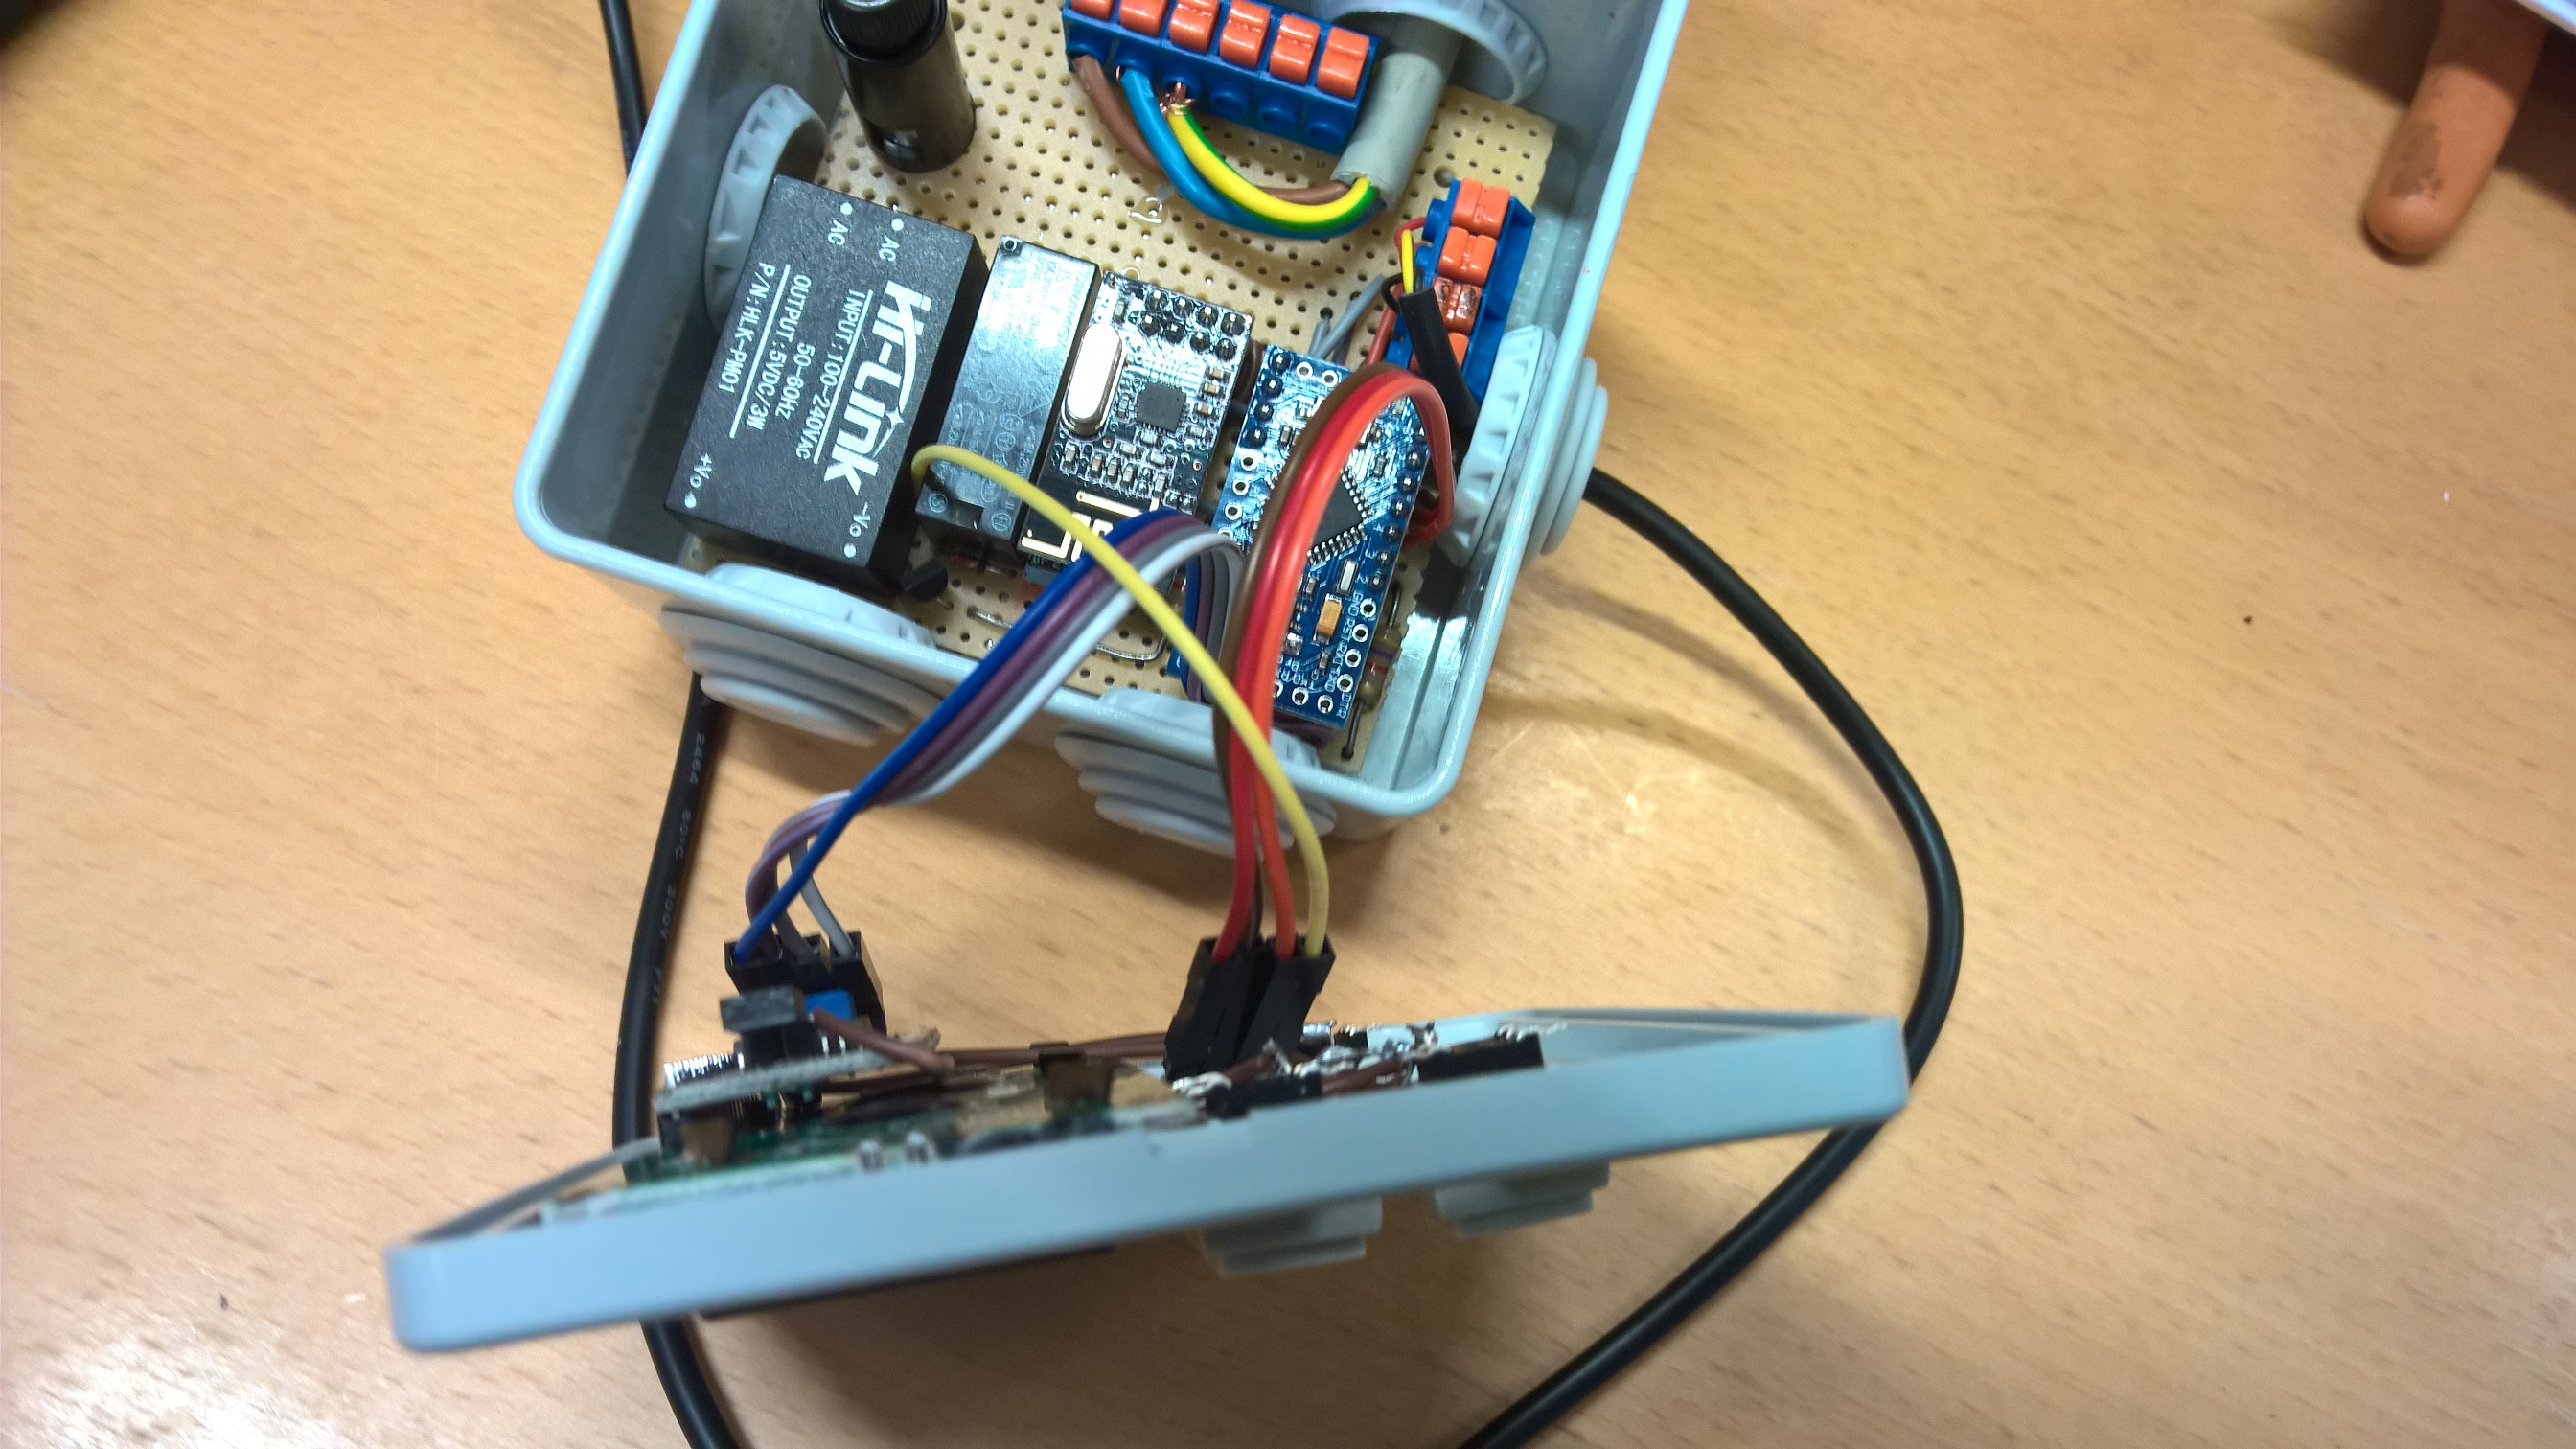 Monitoring a wood boiler heating system | MySensors Forum